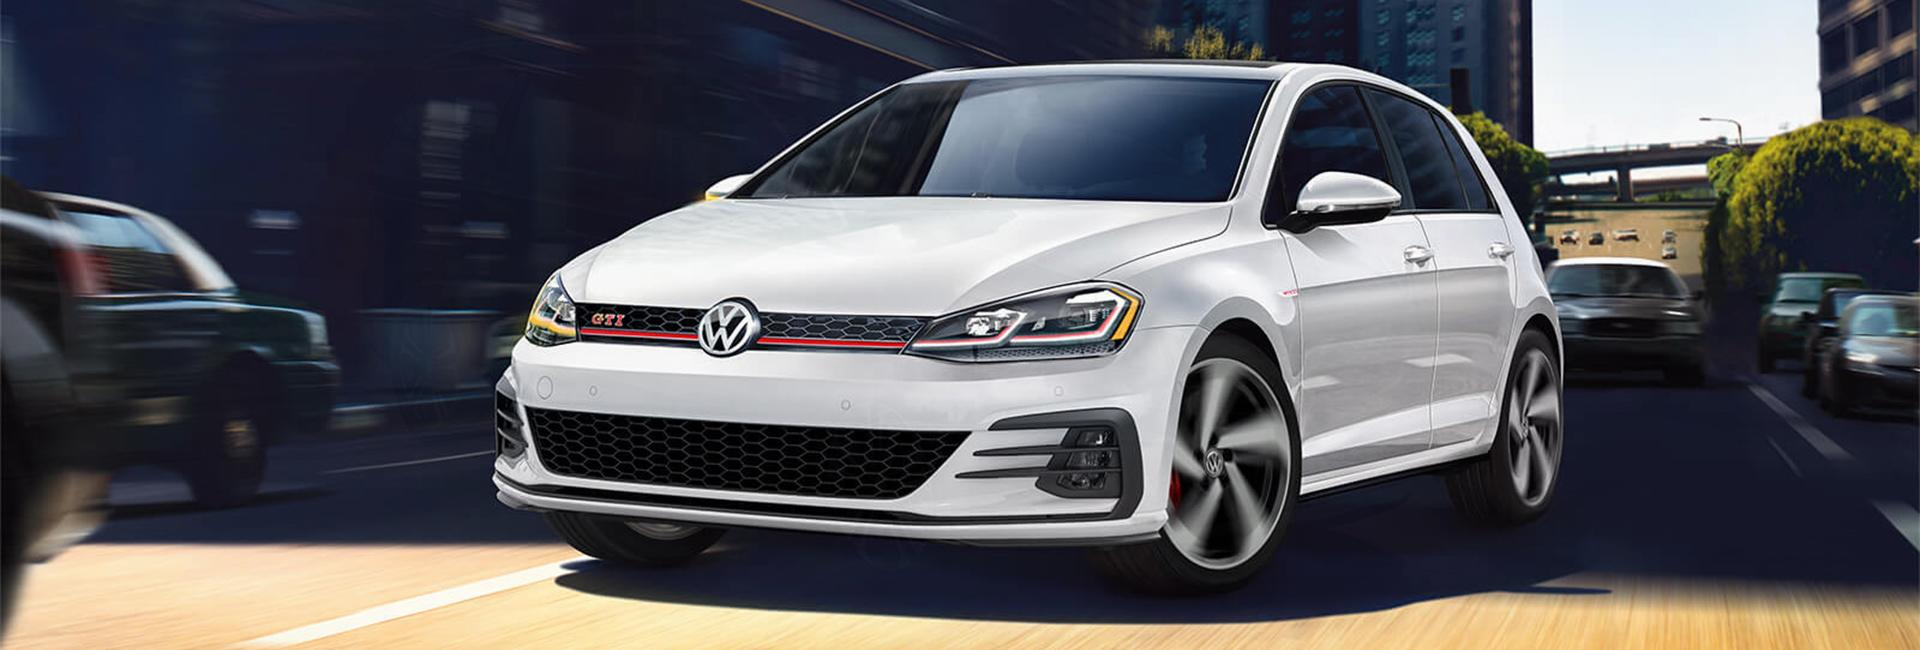 Picture of the 2020 Volkswagen GTI for sale.